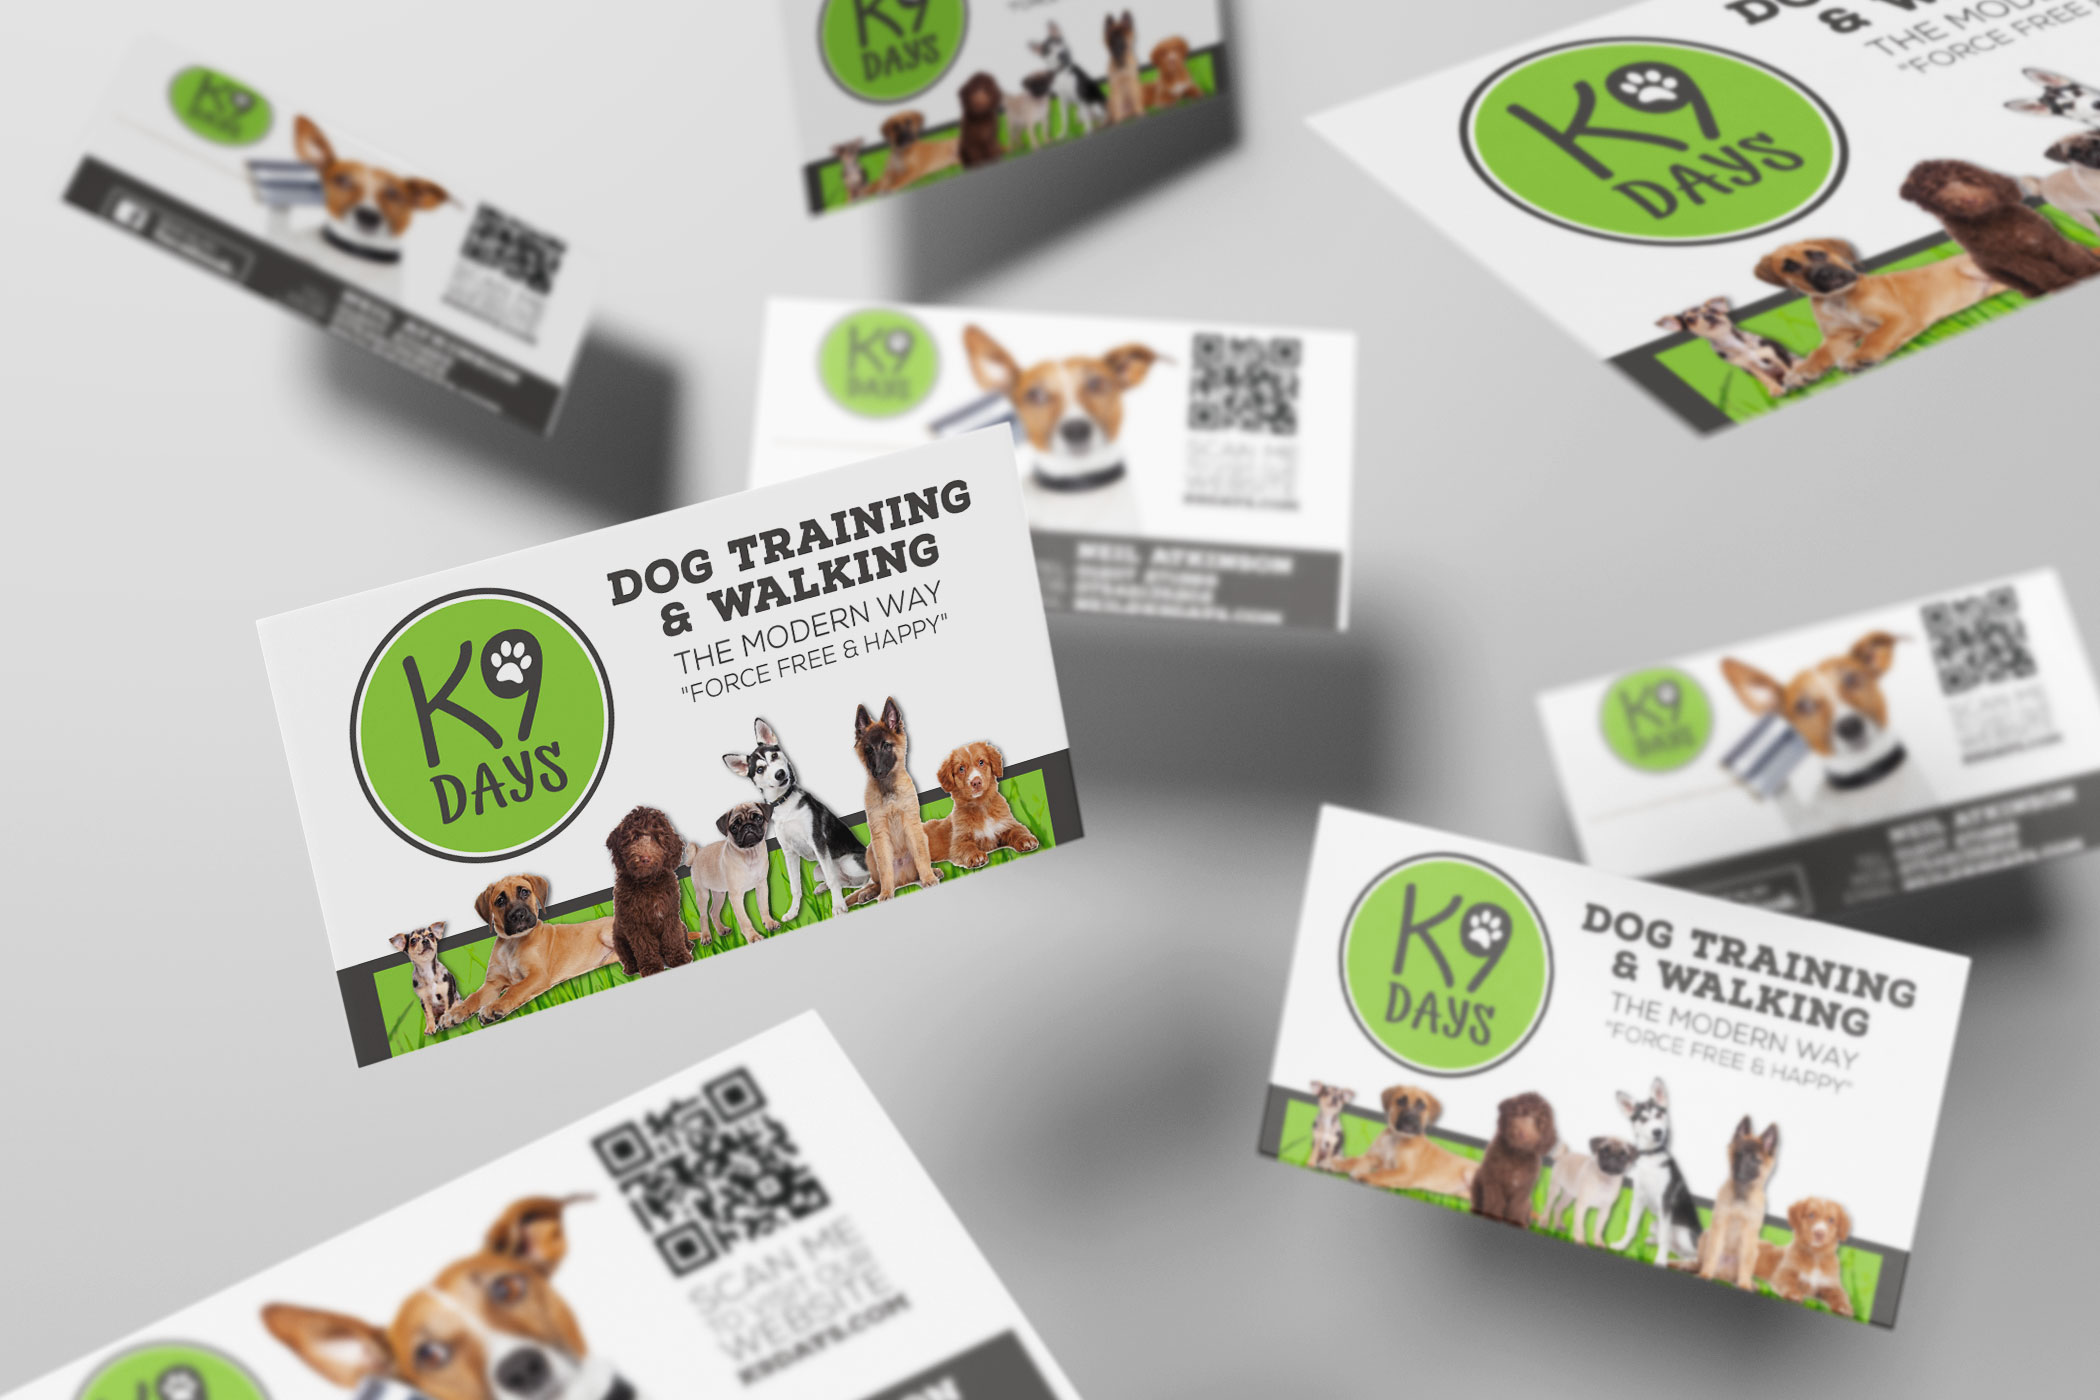 K9 Days - Business Card Design and Print - Firefly New Media